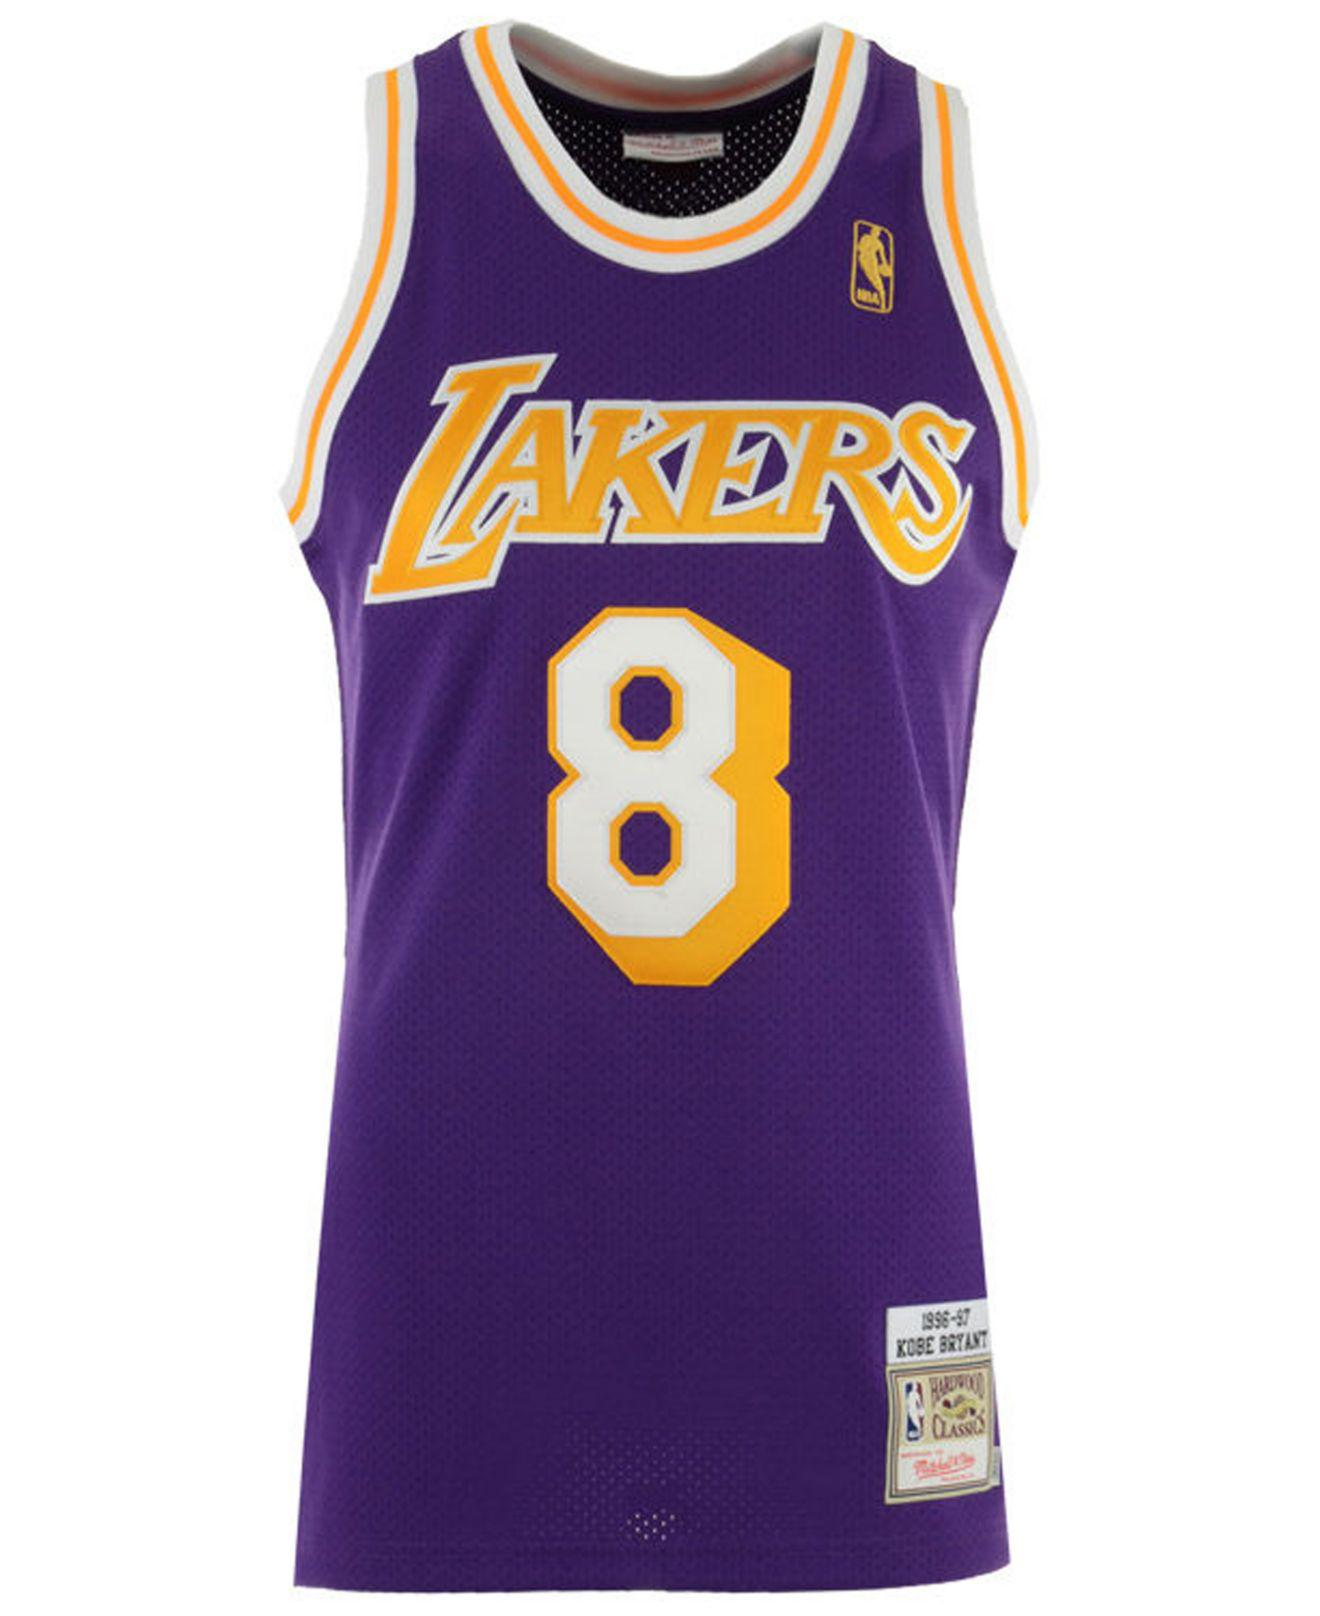 bdf7e937362 Mitchell   Ness Kobe Bryant Los Angeles Lakers Authentic Jersey in Purple  for Men - Lyst